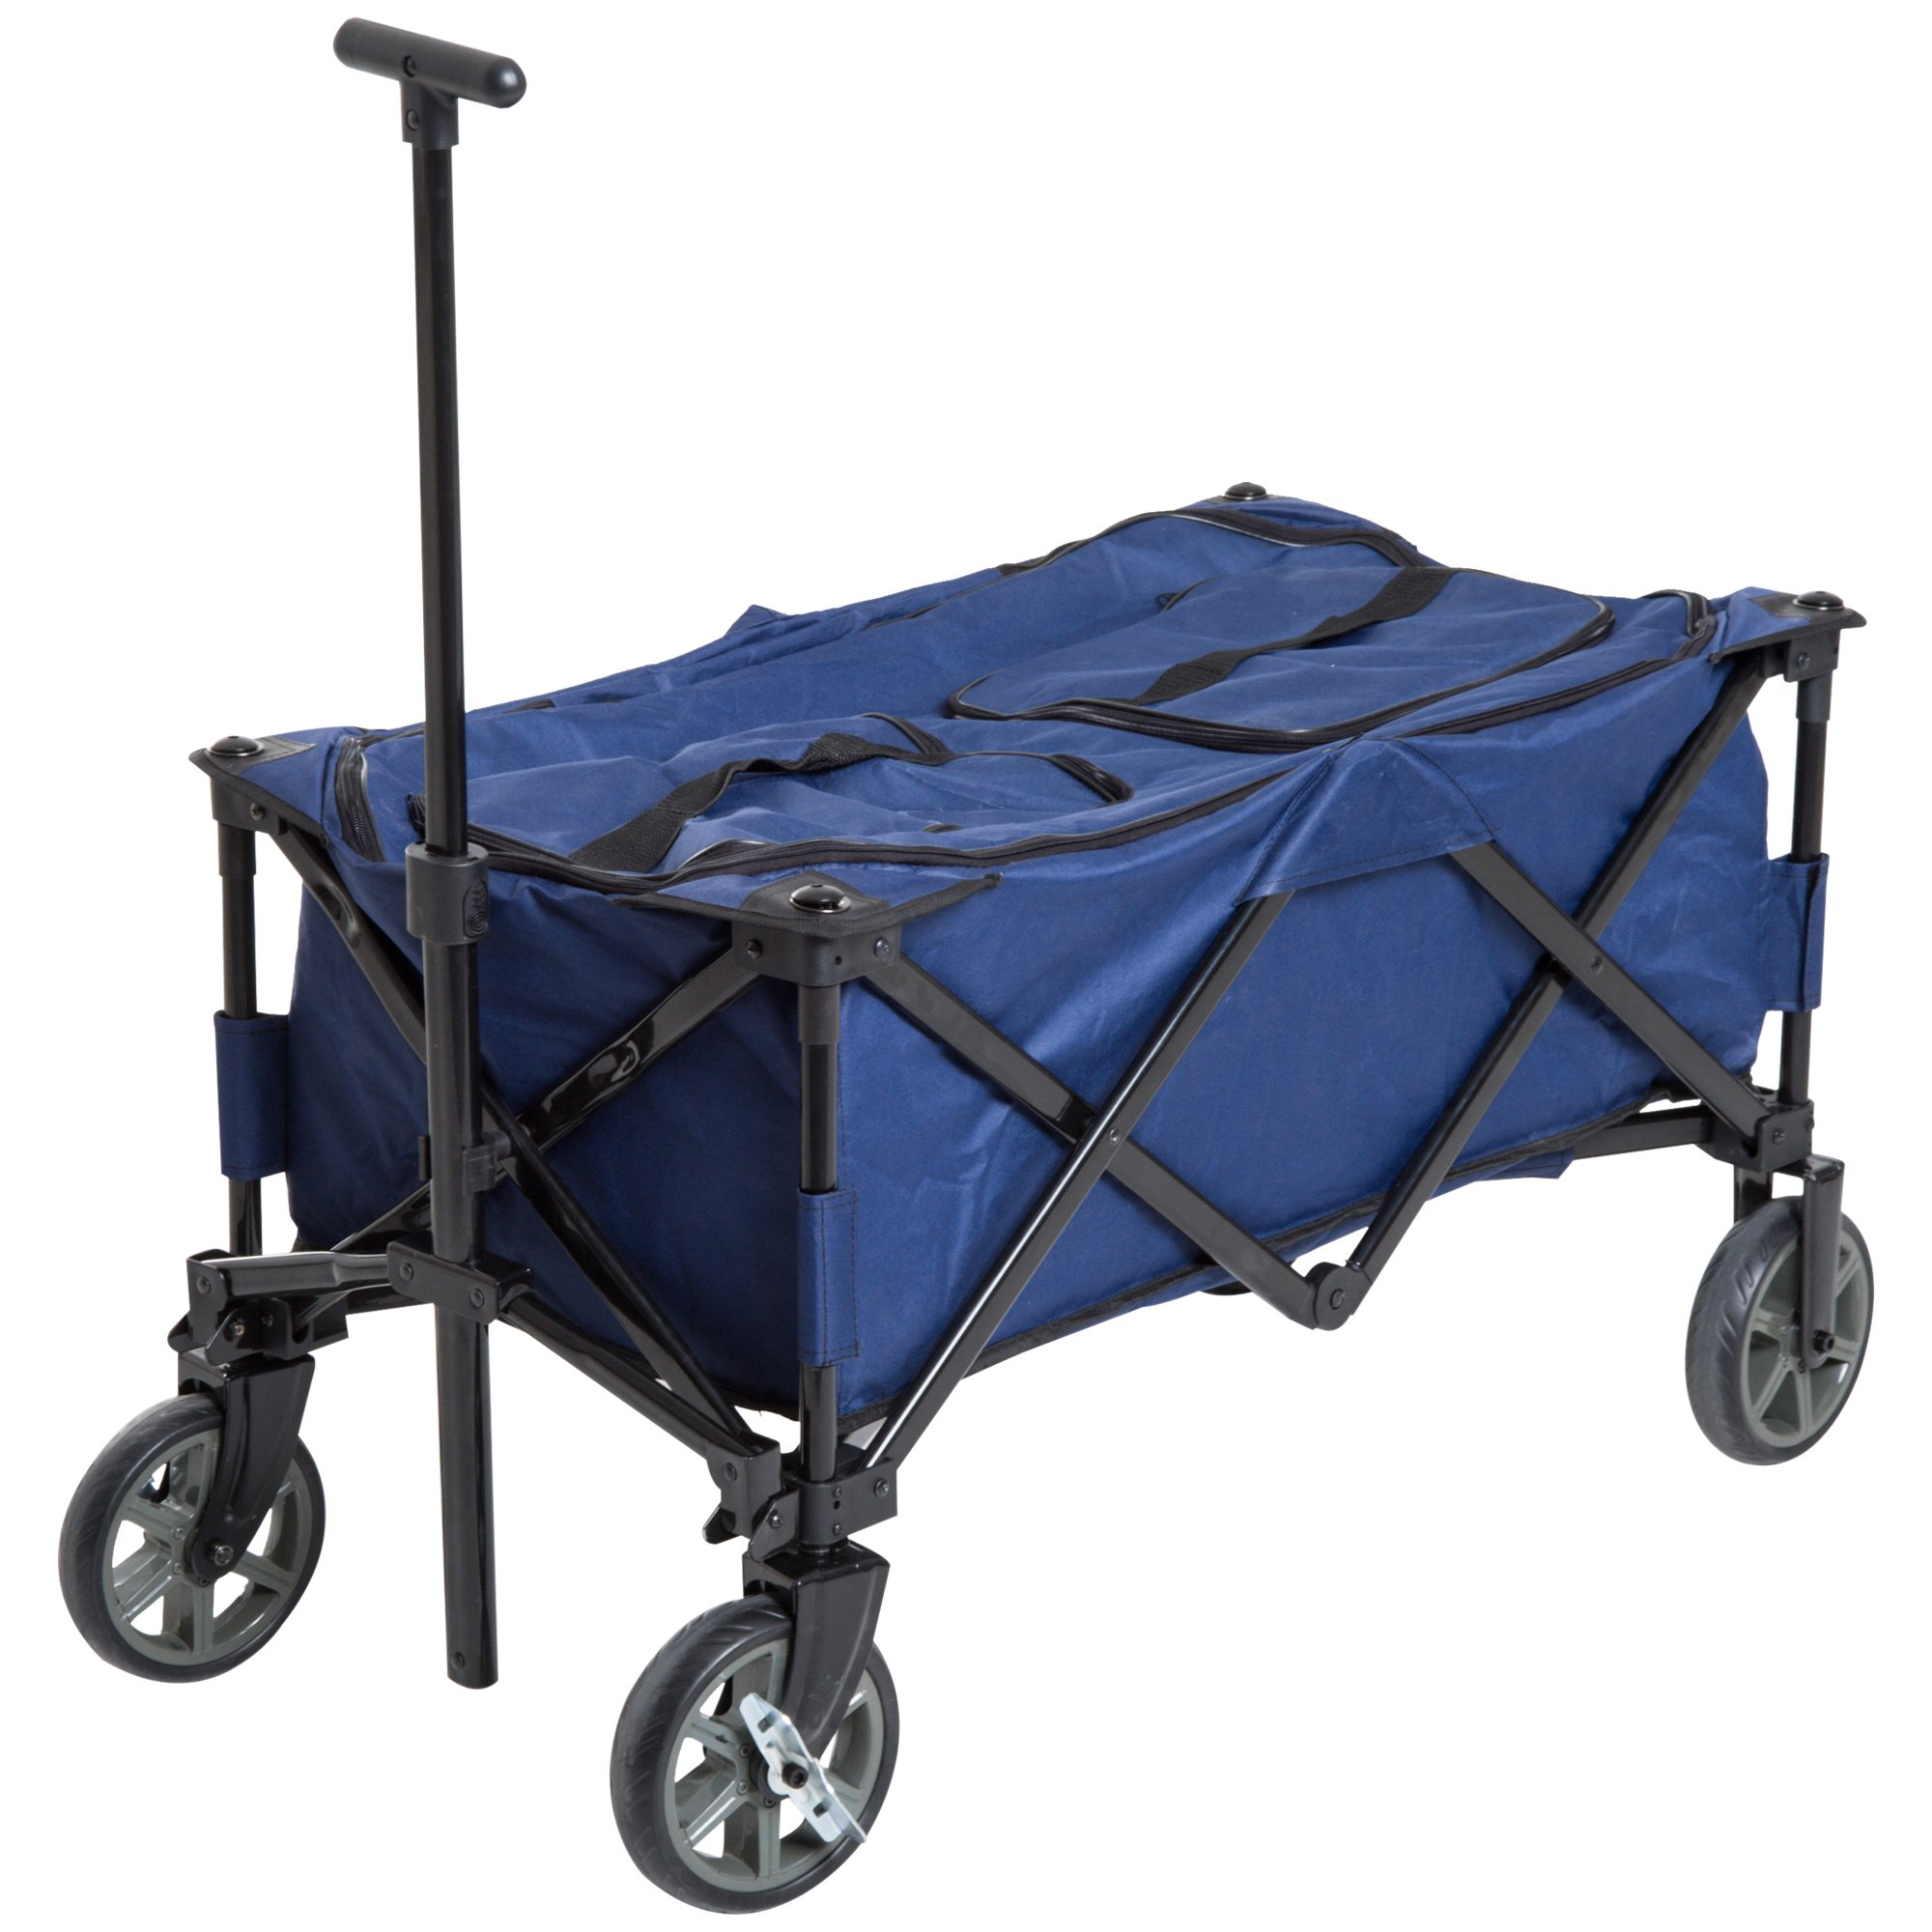 Outsunny 135Qt Soft Sided Rolling Insulated Cooler Cart Folding Utility Wagon with Wheels - Blue/Black